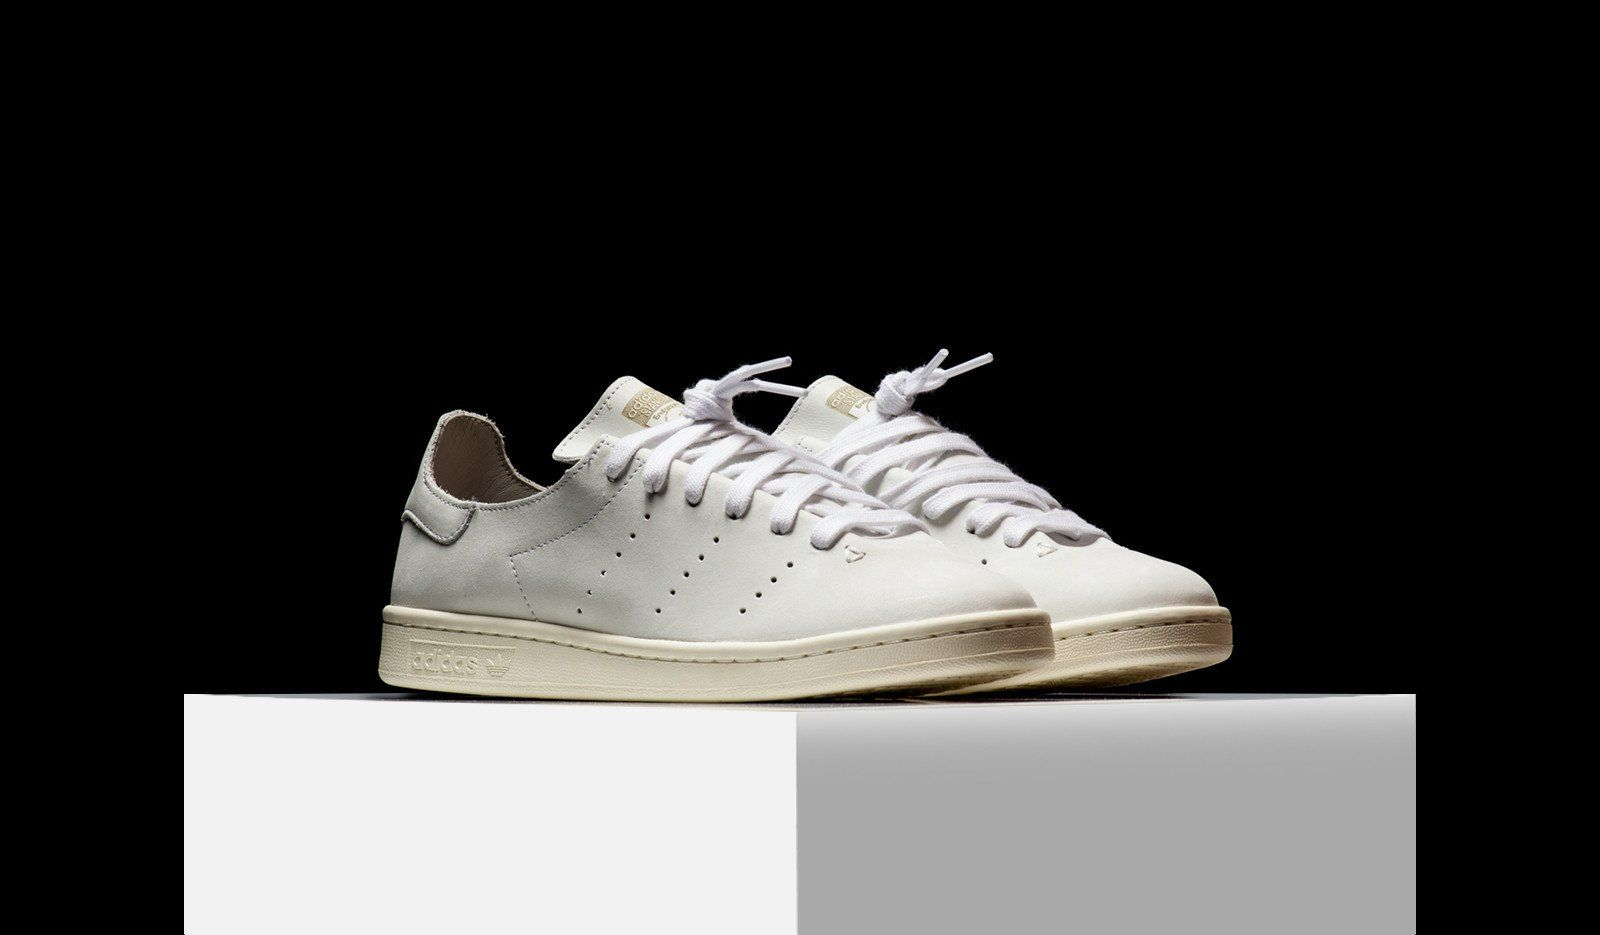 adidas originali introduce la pelle con un calzino stan smith